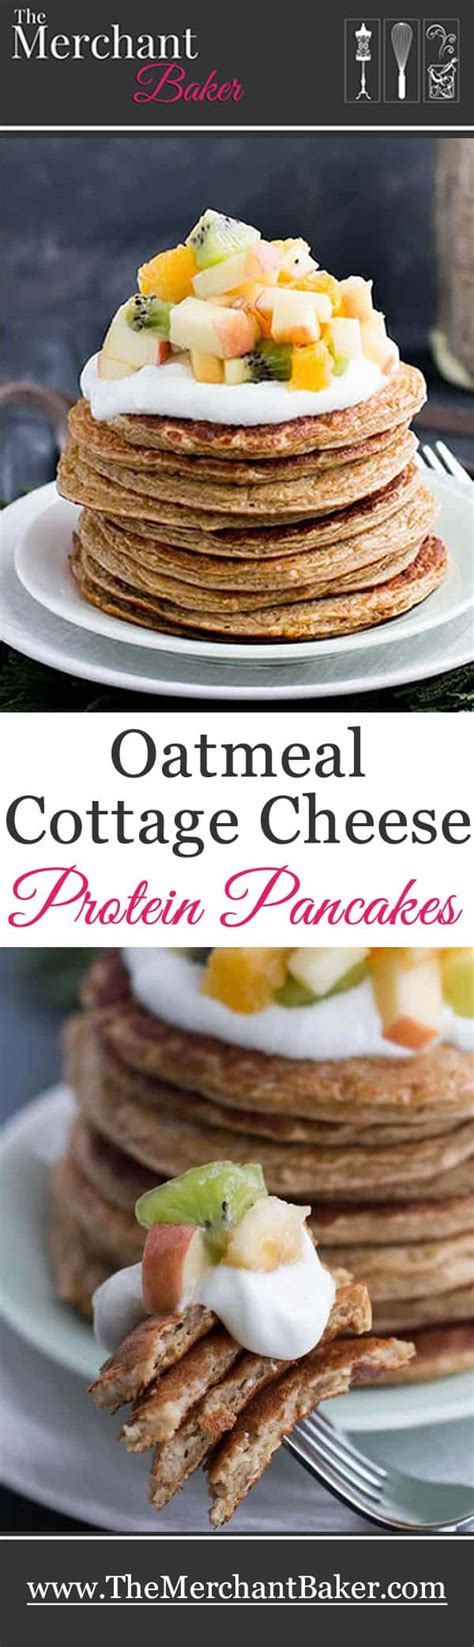 oatmeal cottage cheese protein pancakes the merchant baker